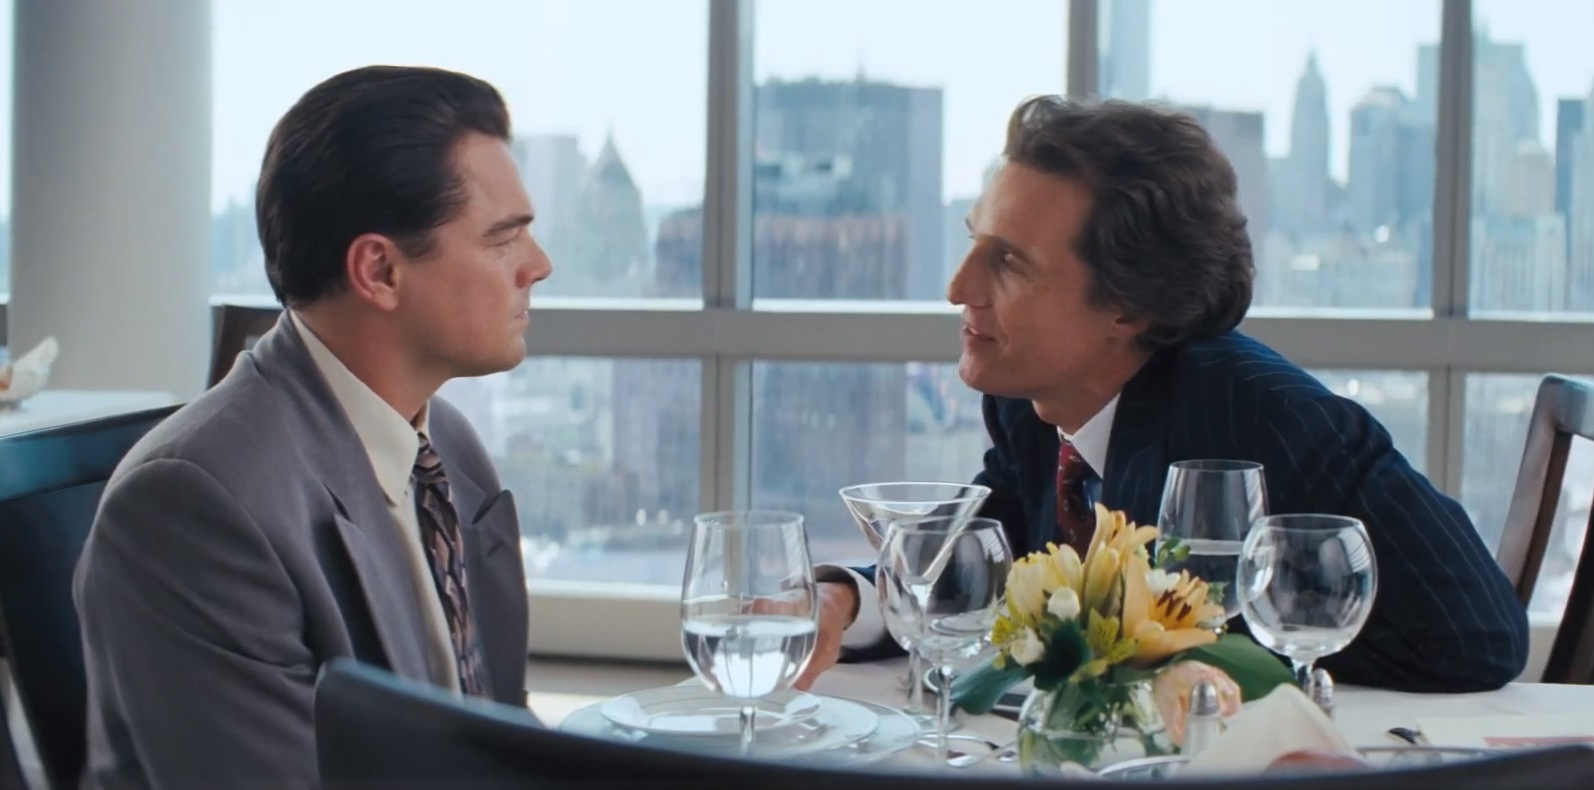 Leonardo Di Caprio and Matthew Mcconaughey scene, in the Wolf of Wall Street